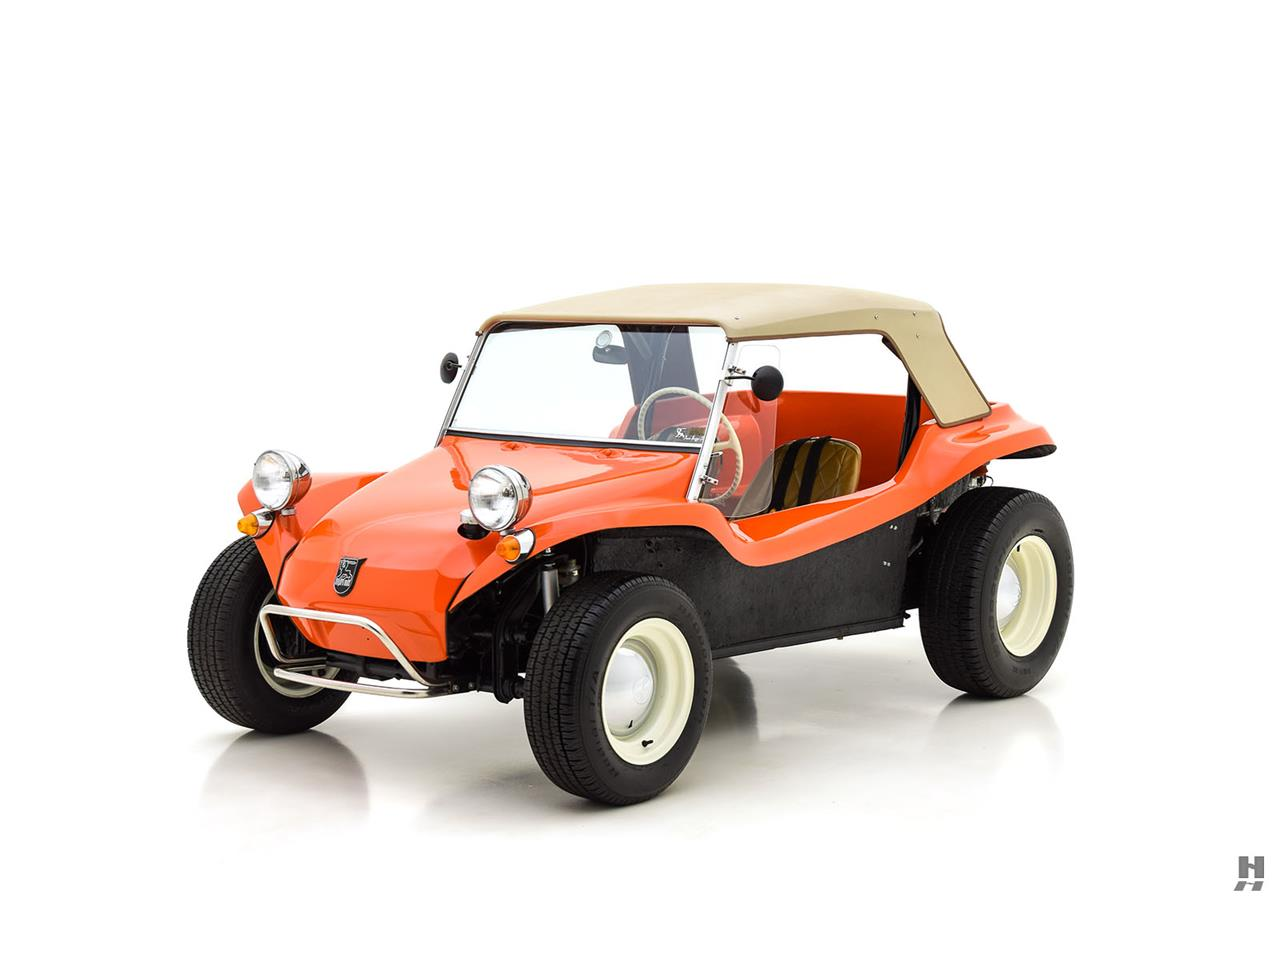 For Sale: 1966 Meyers Manx (Dune Buggy) in Saint Louis, Missouri